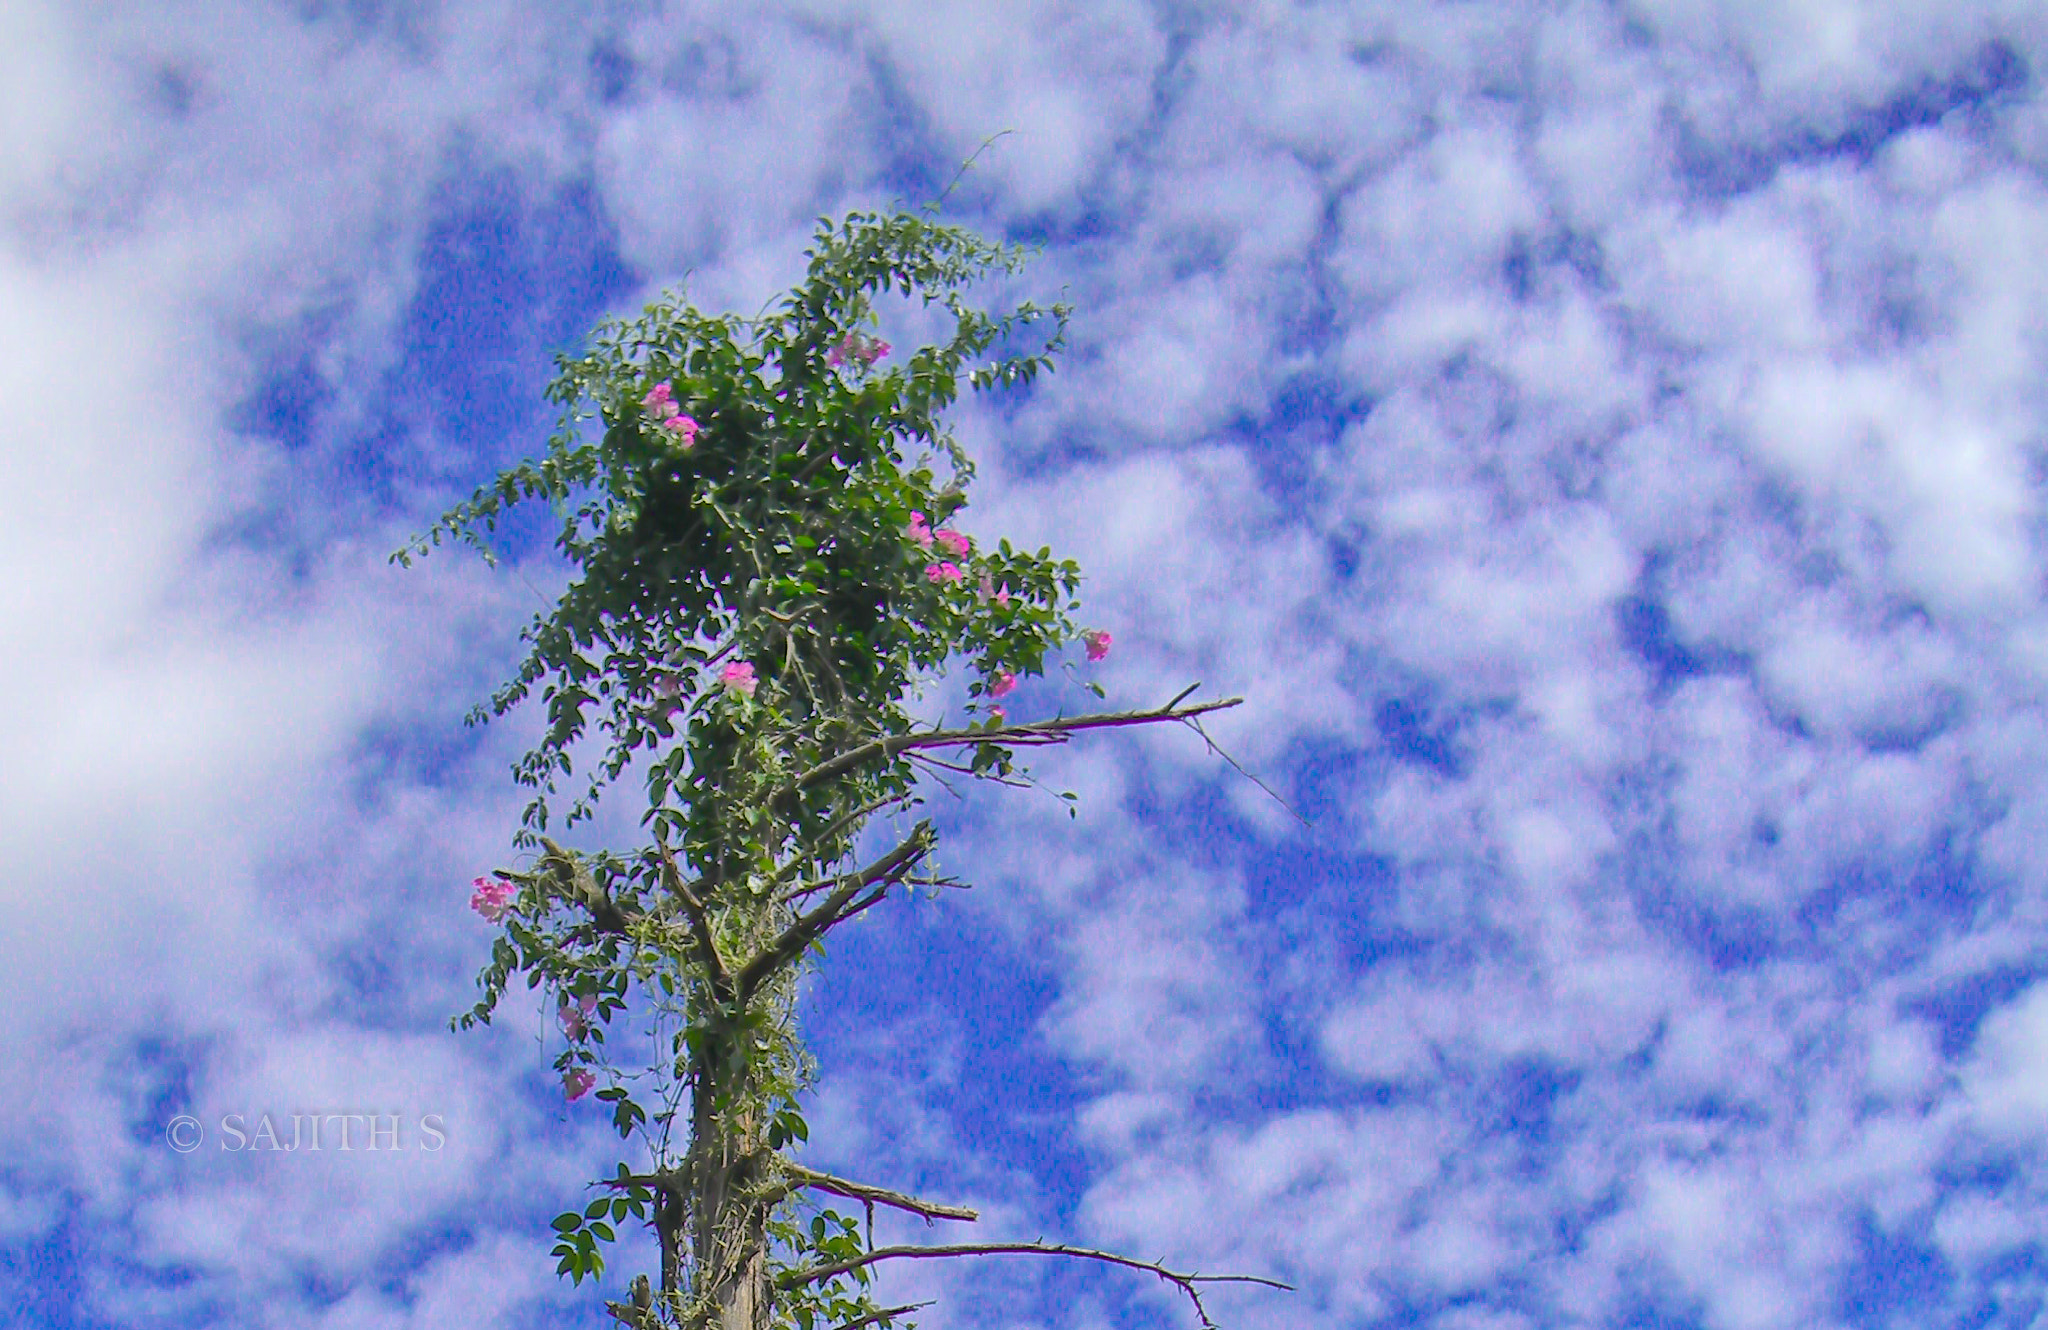 Photograph Tree and cloud by Sajith S on 500px